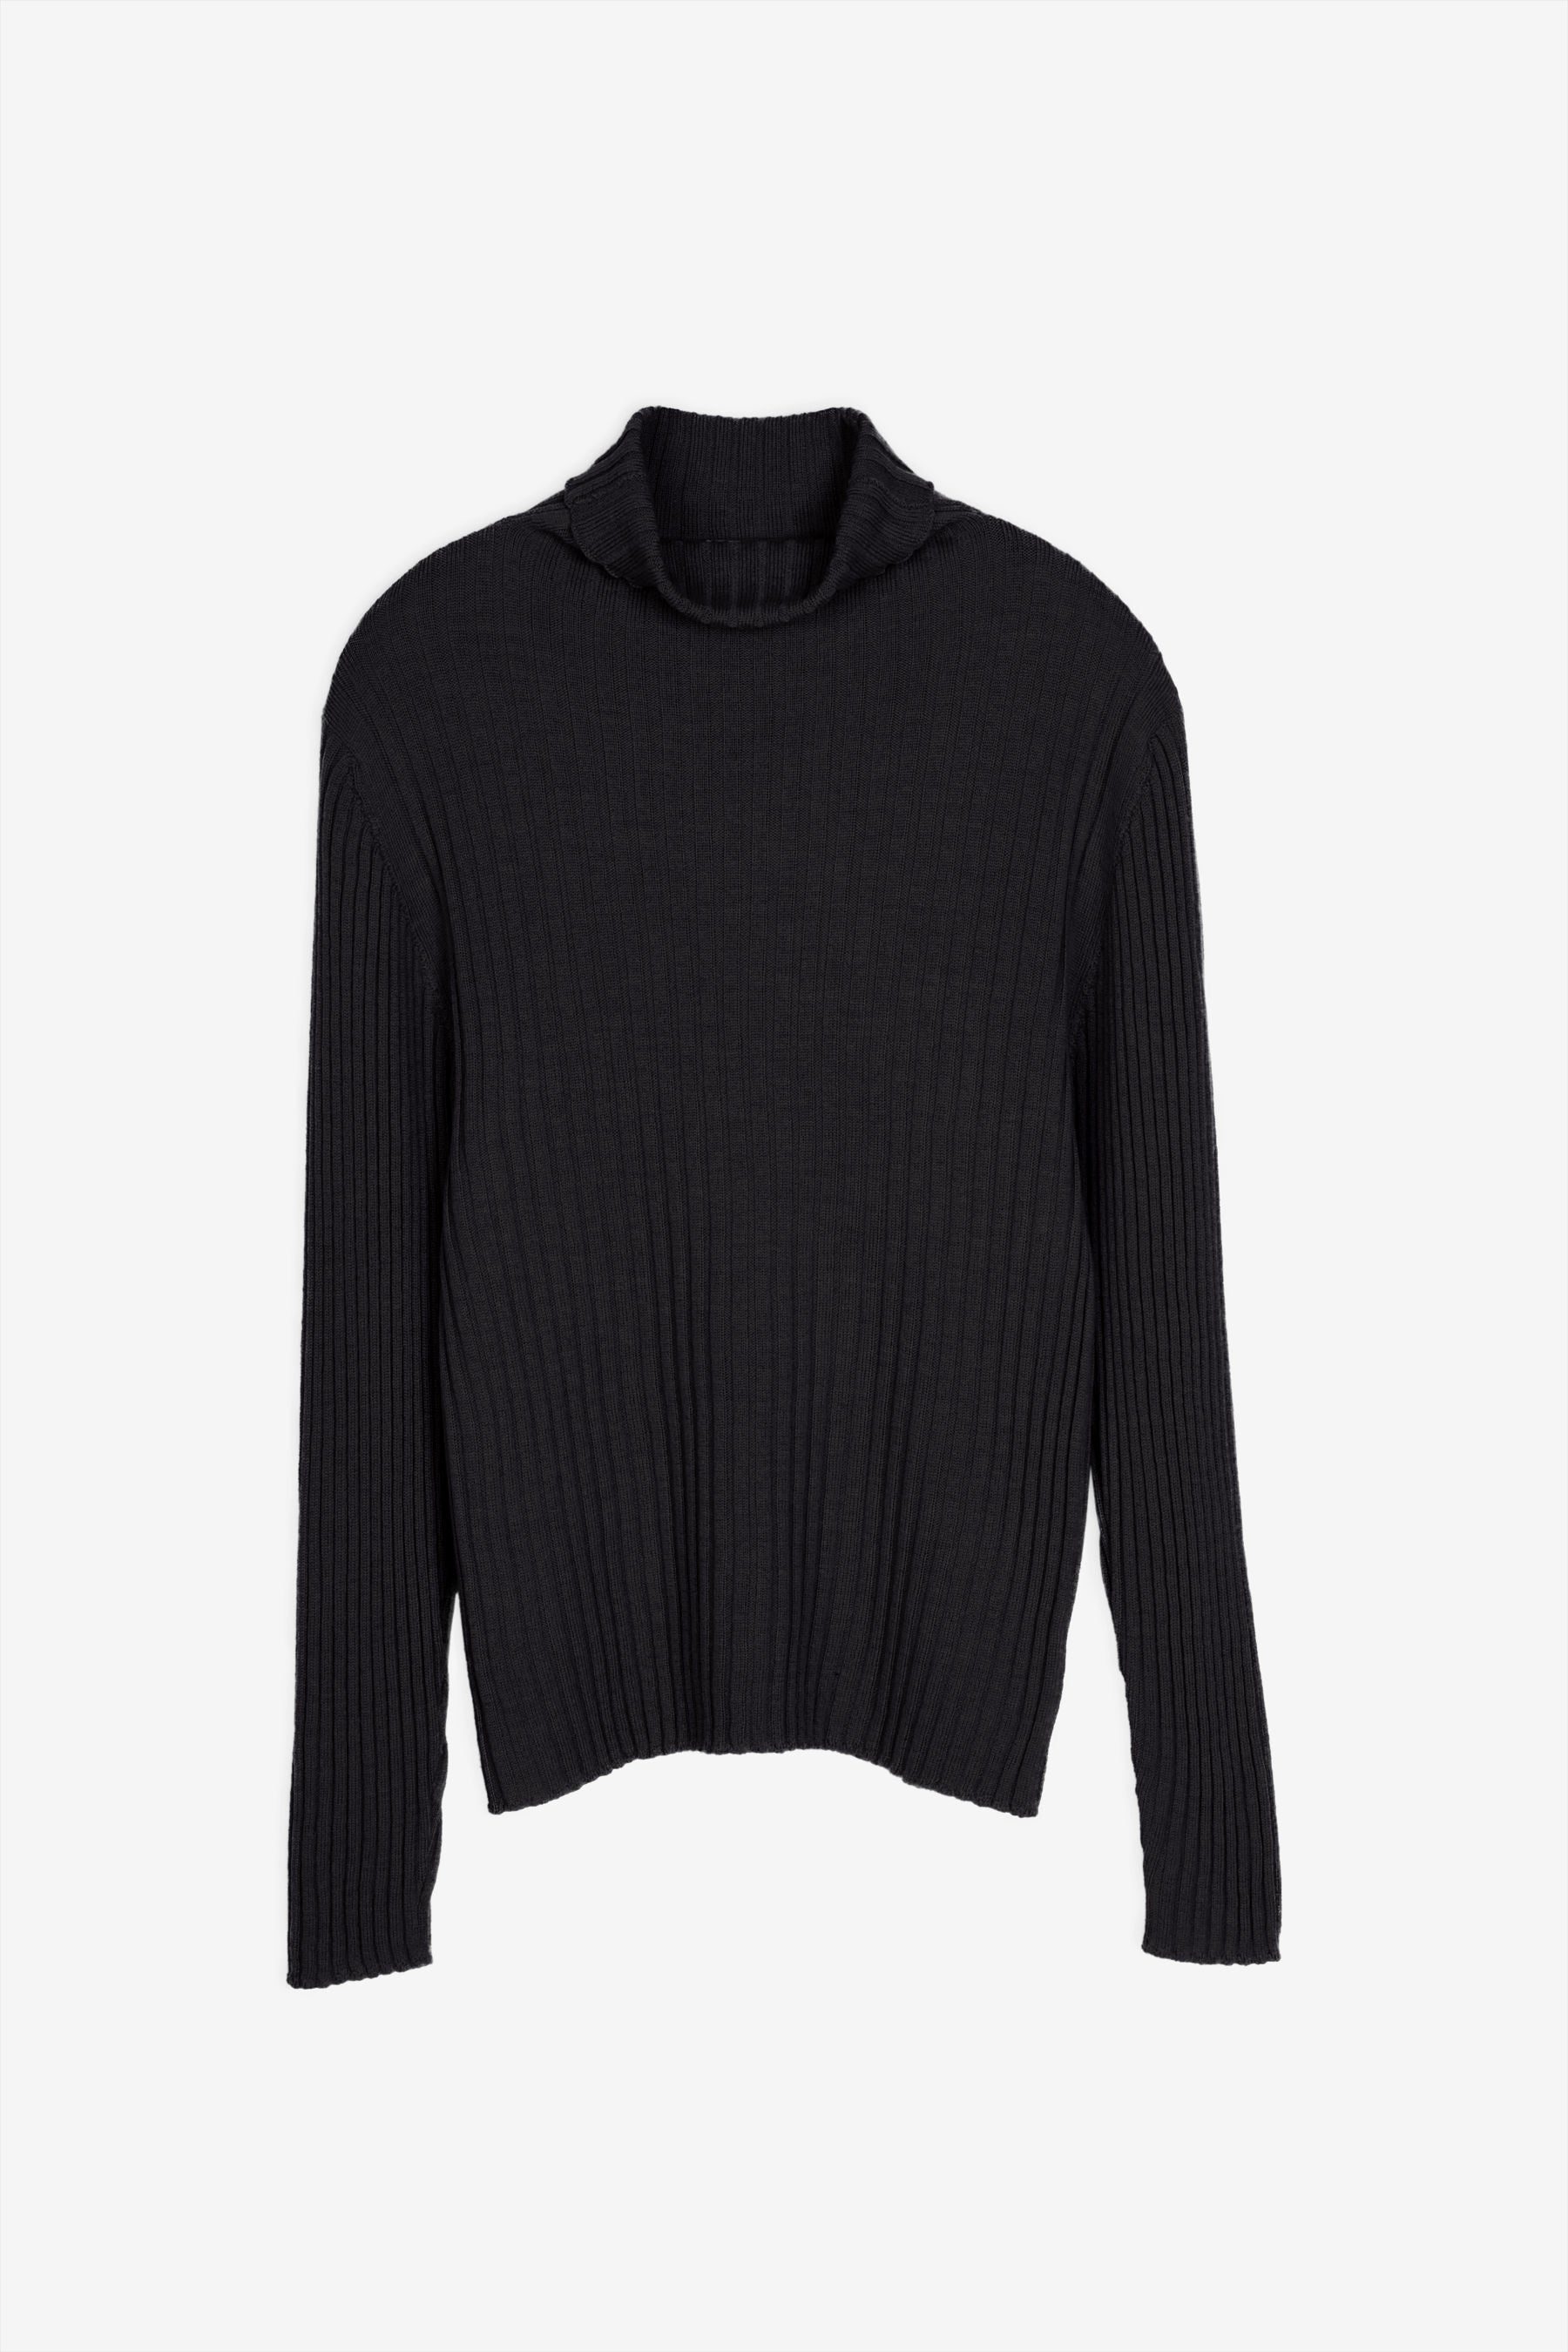 Bice merino turtleneck in black